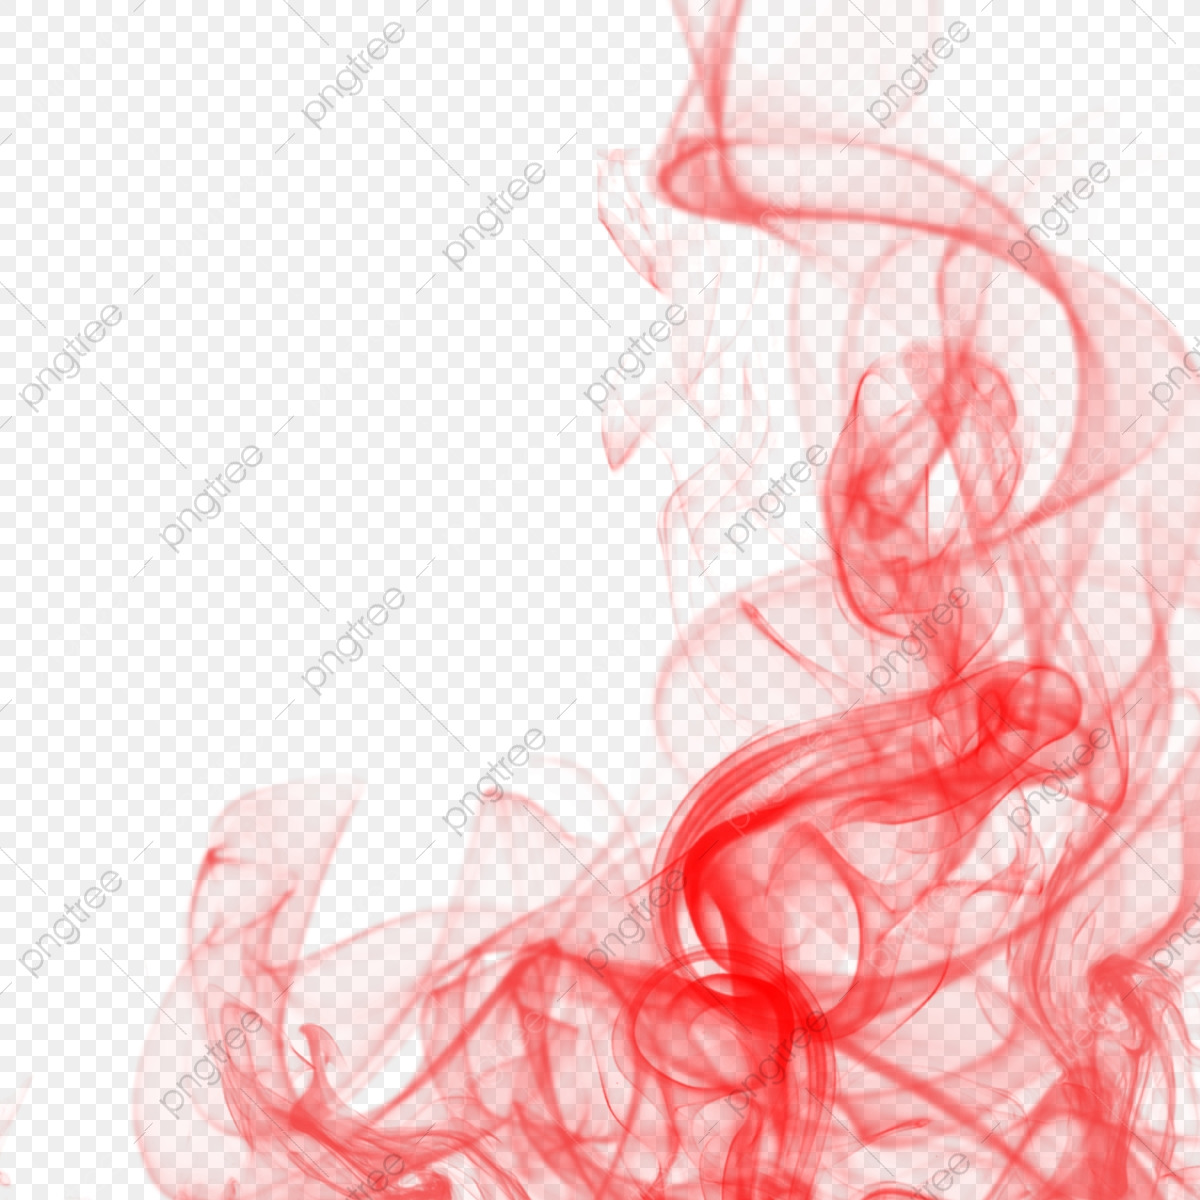 red smoke png images vector and psd files free download on pngtree https pngtree com freepng ink diffusion red smoke effect 5475187 html